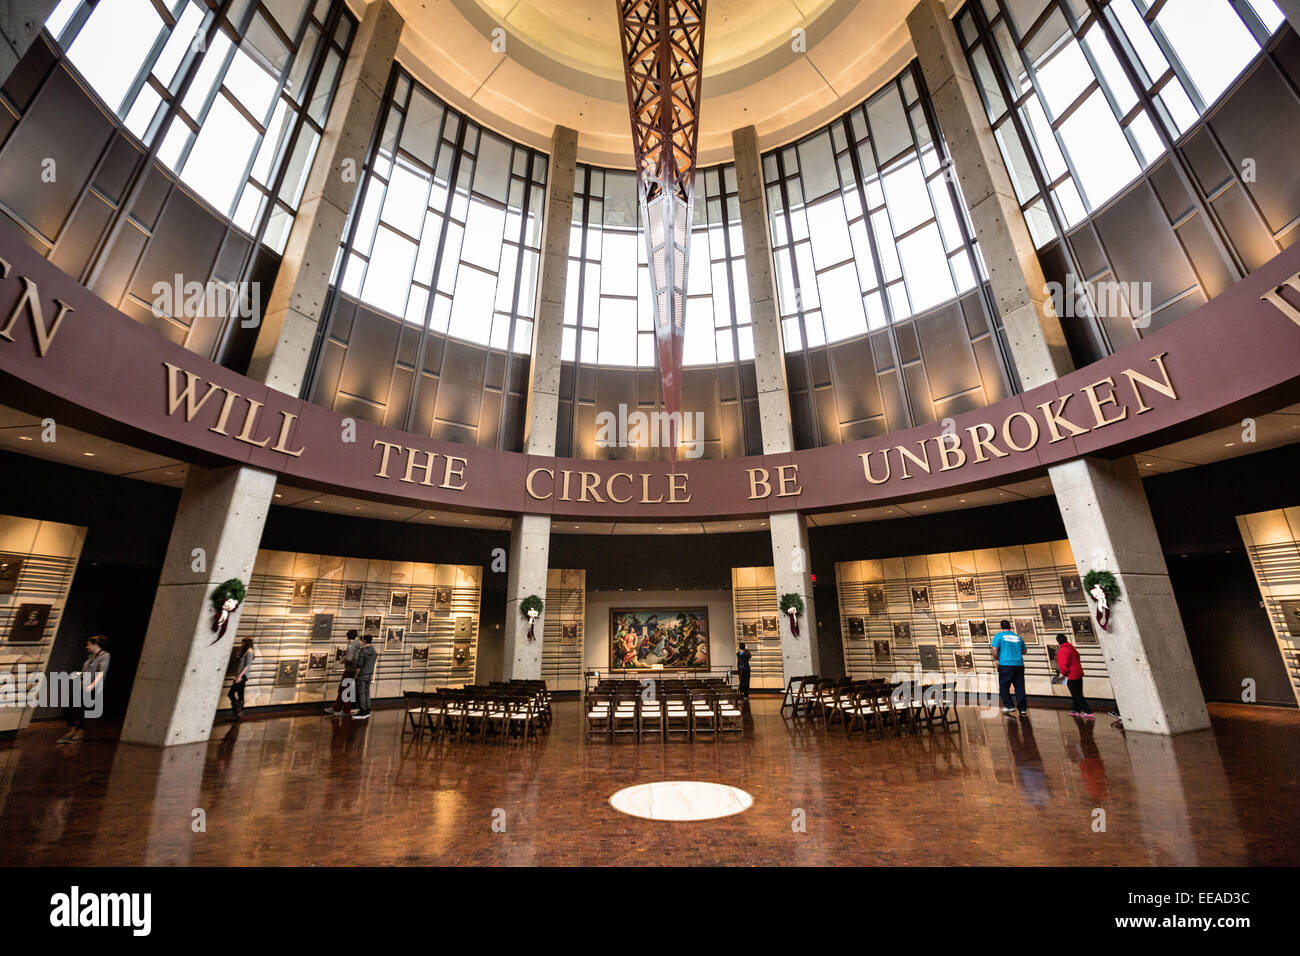 Hall Of Fame Rotunda Of The Country Music Hall Of Fame In Nashville Tn Stock Photo Alamy